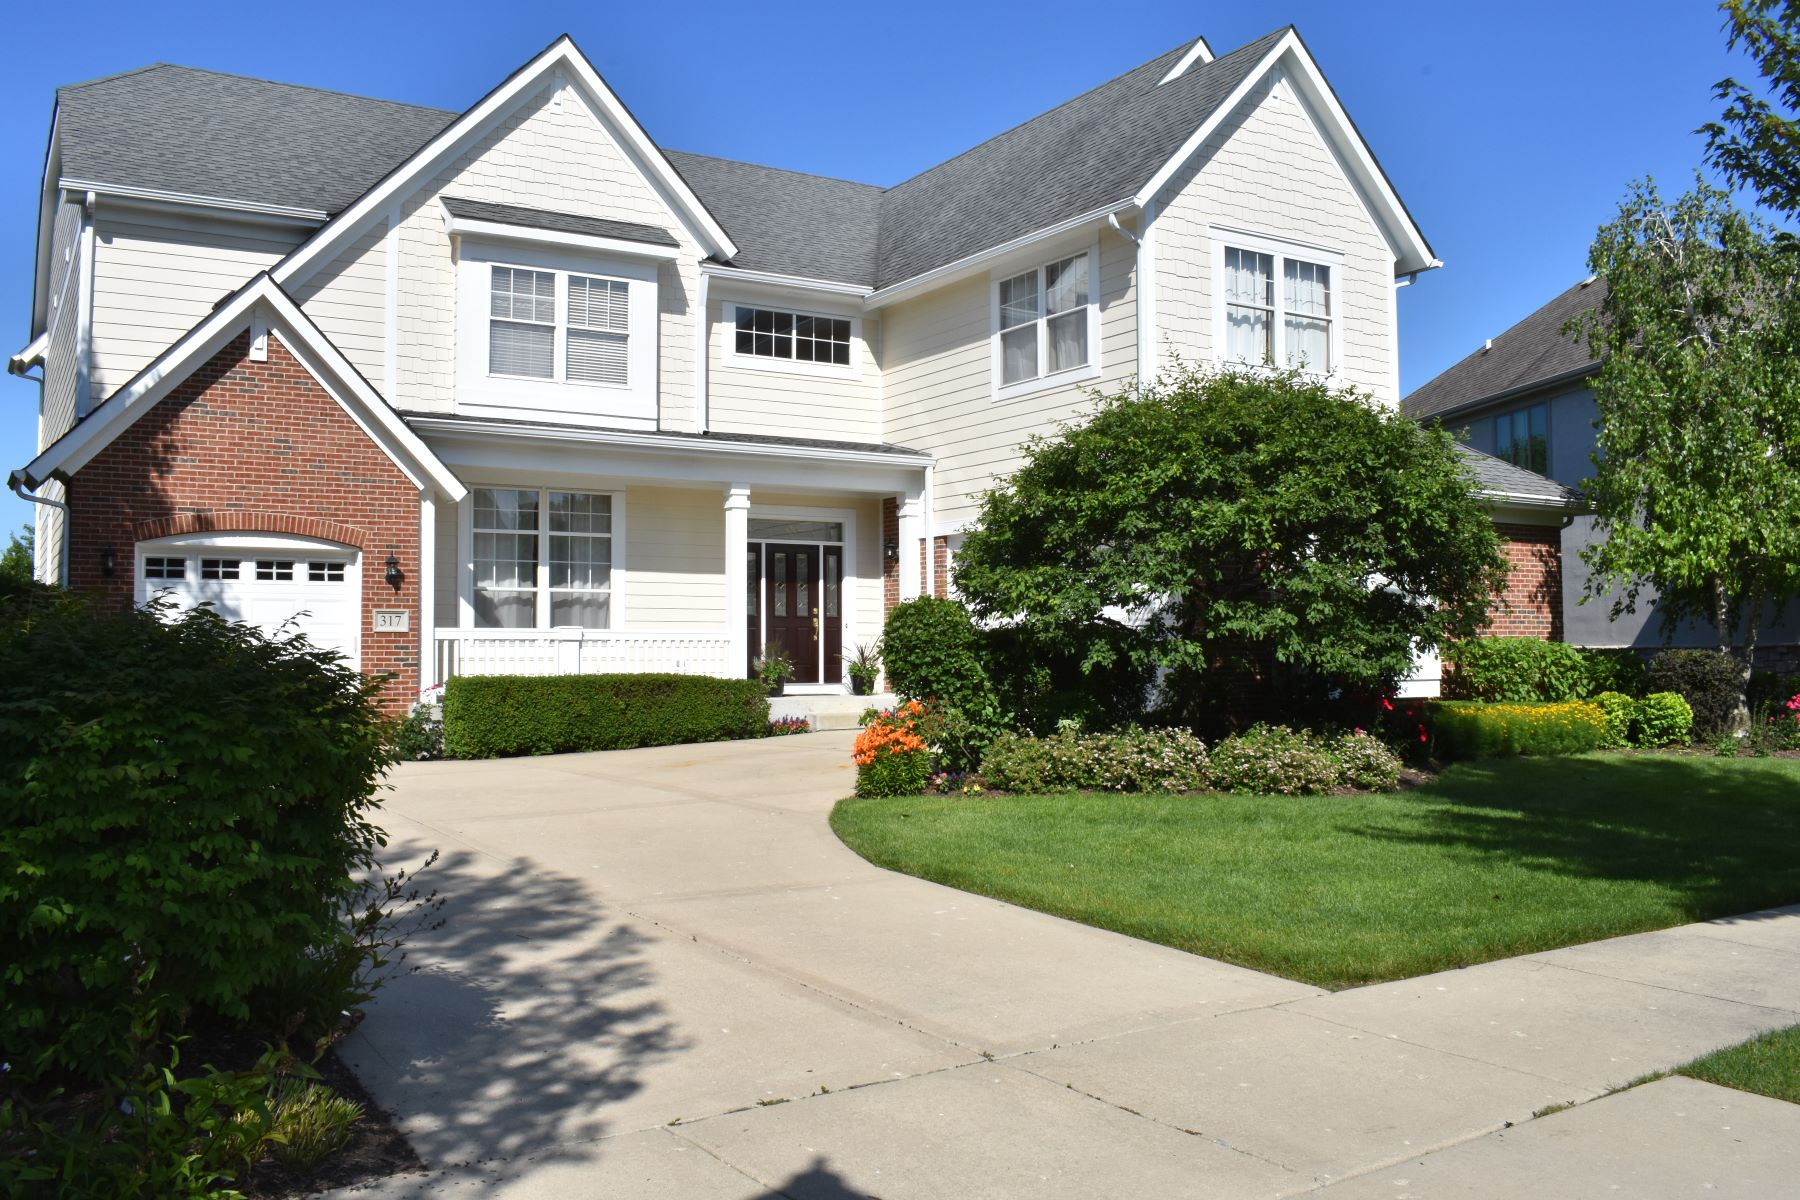 Single Family Home for Sale at 317 Colonial Drive, Vernon Hills, IL 60061 317 Colonial Drive Vernon Hills, Illinois 60061 United States